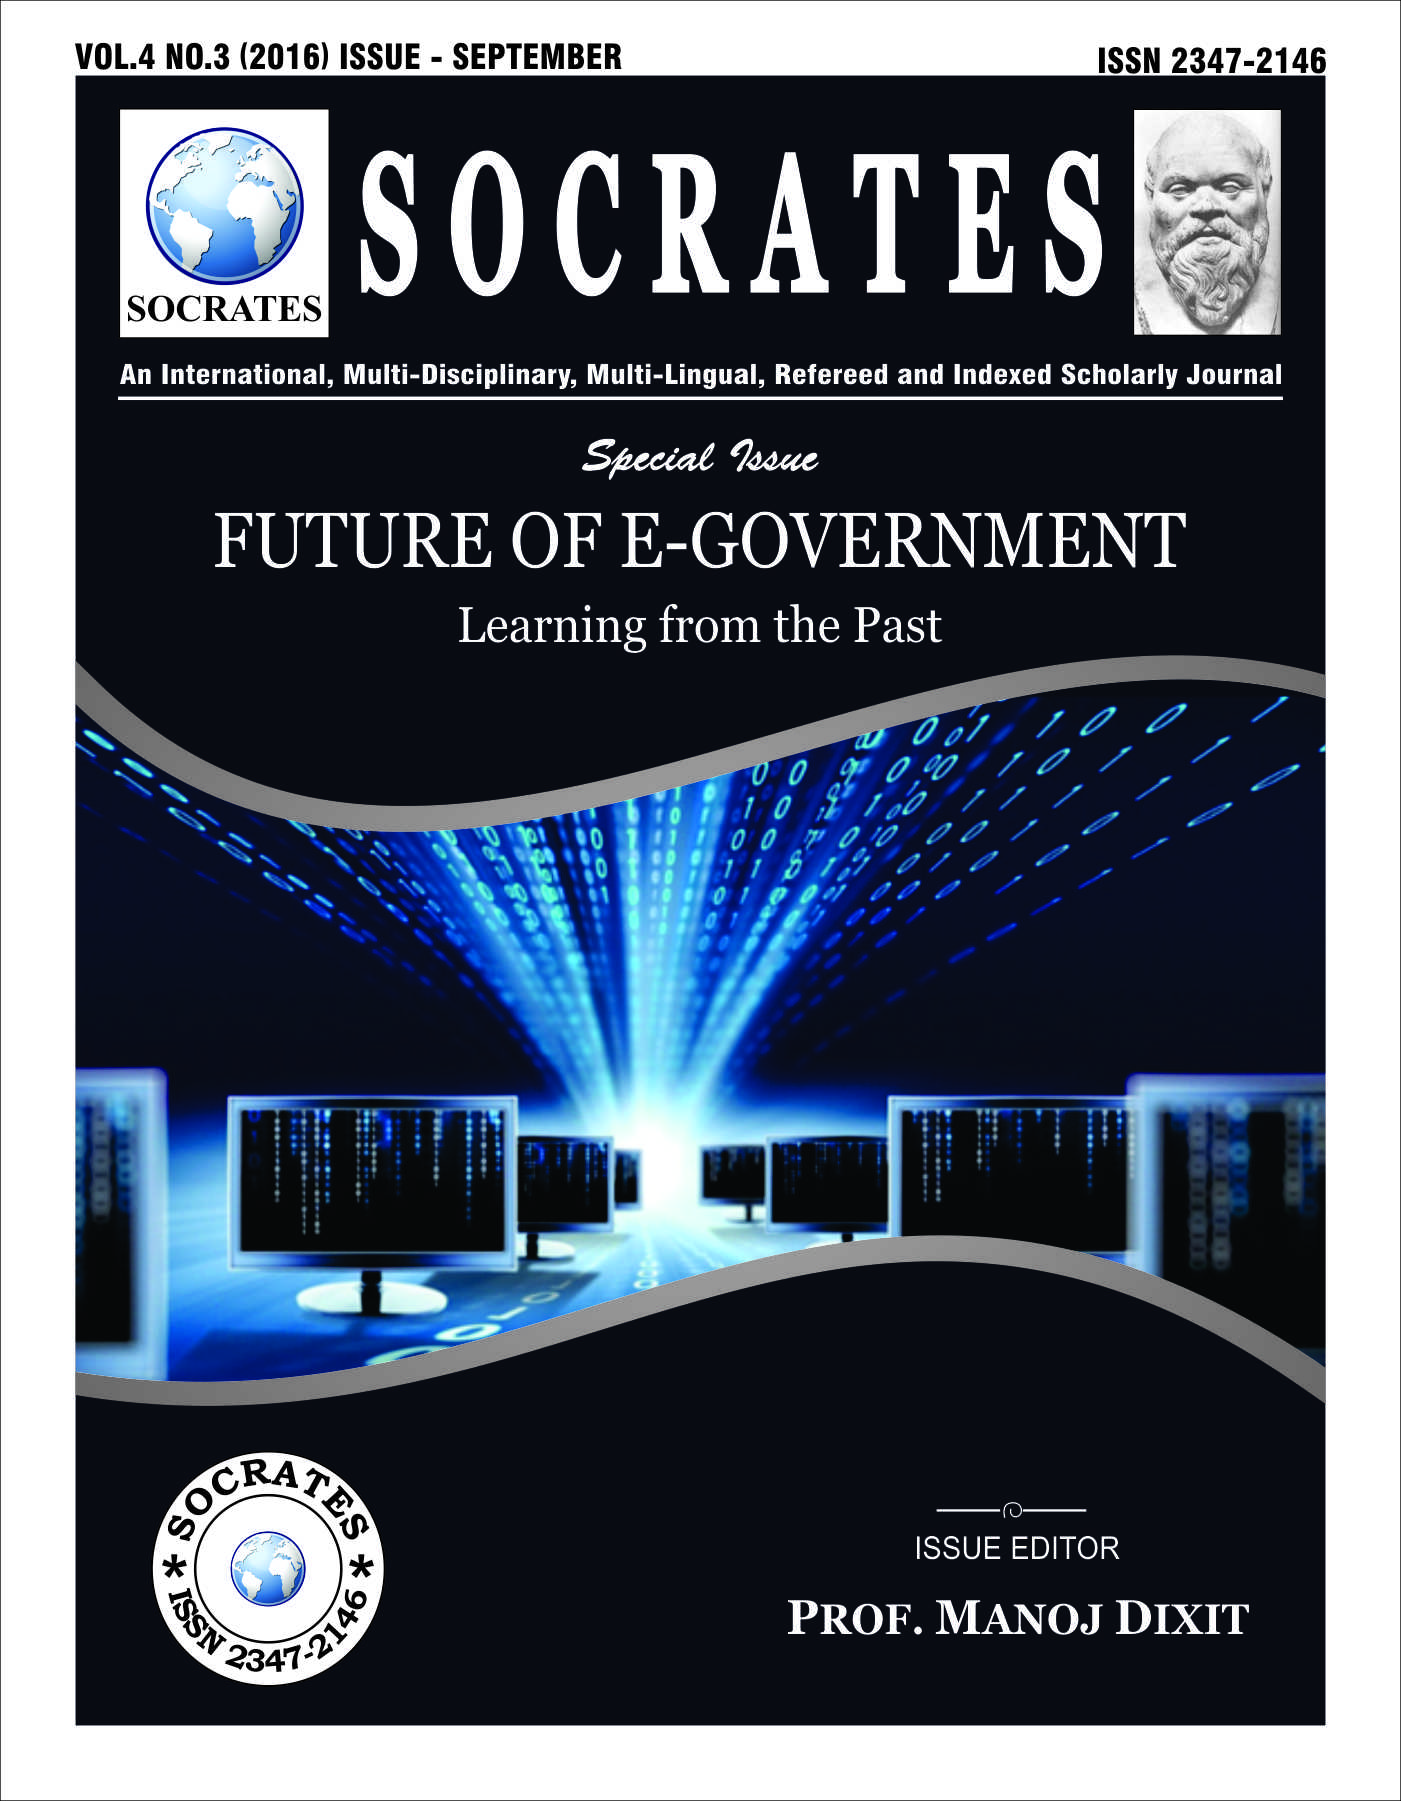 Vol 4 No 3 (2016): Issue - September : Special issue on e-government : Future of E-Government learning from the Past